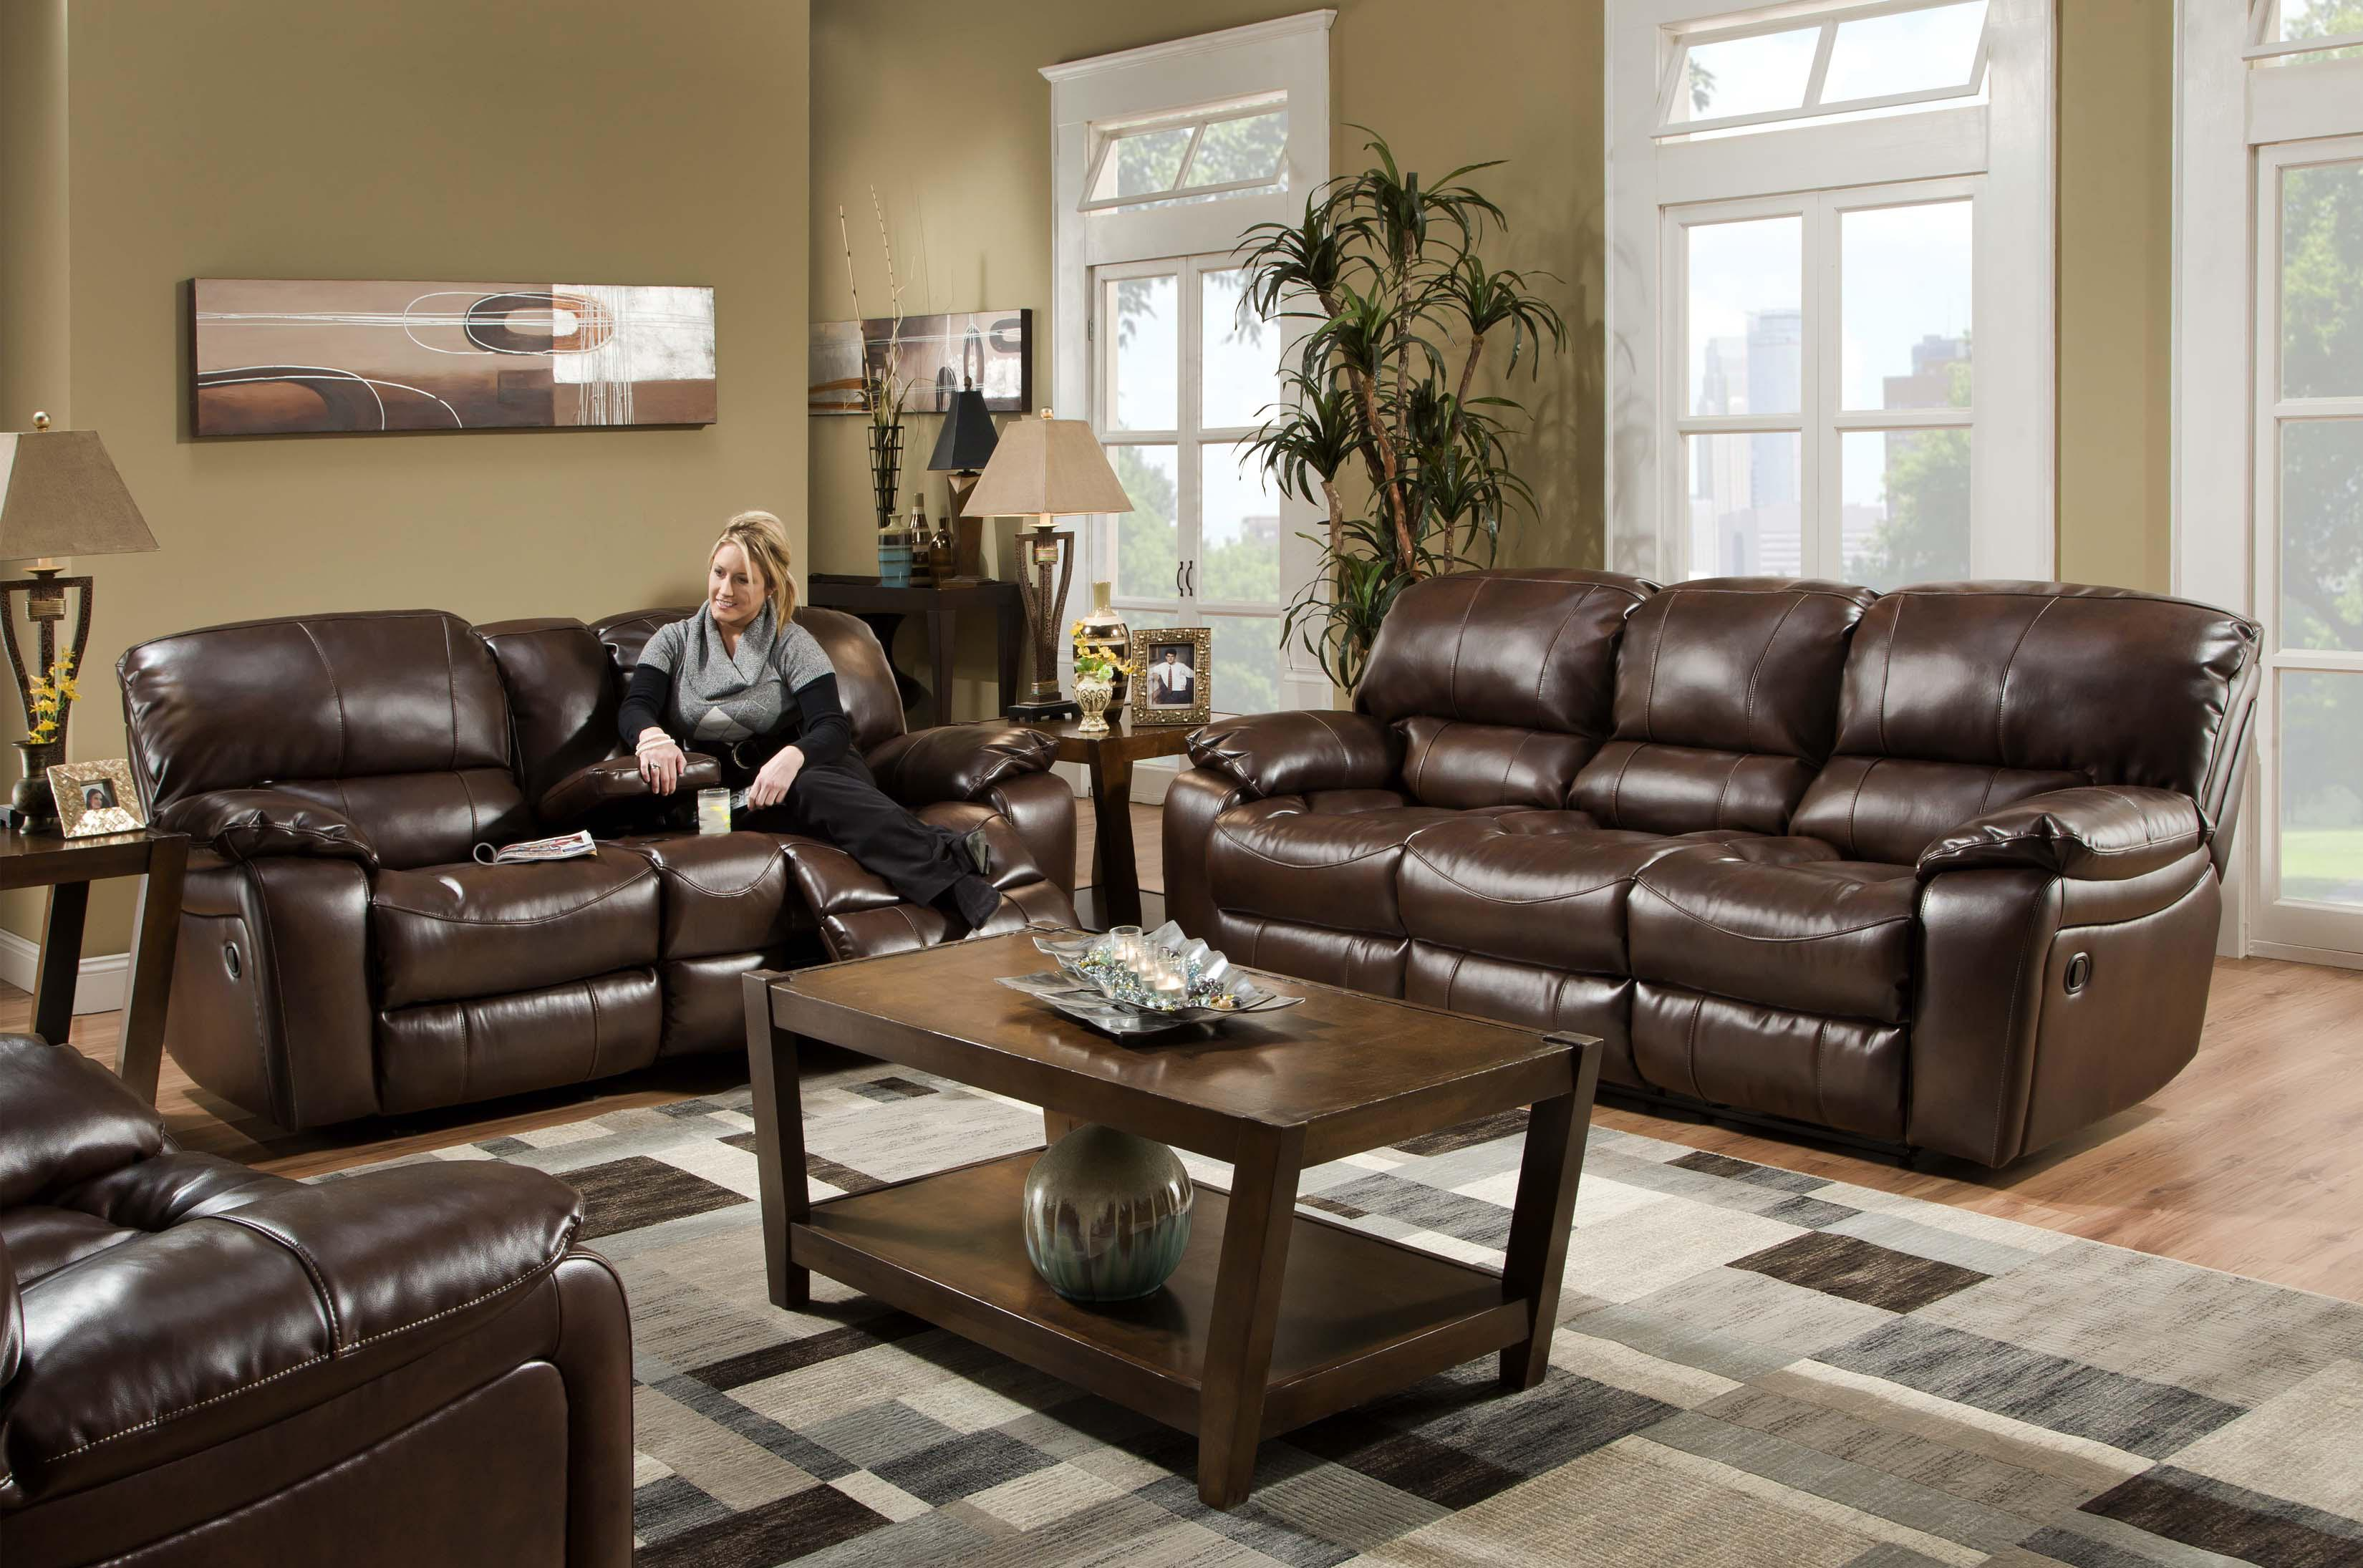 Albany 1750 Reclining Living Room Group - Item Number: 1750 Living Room Group 1